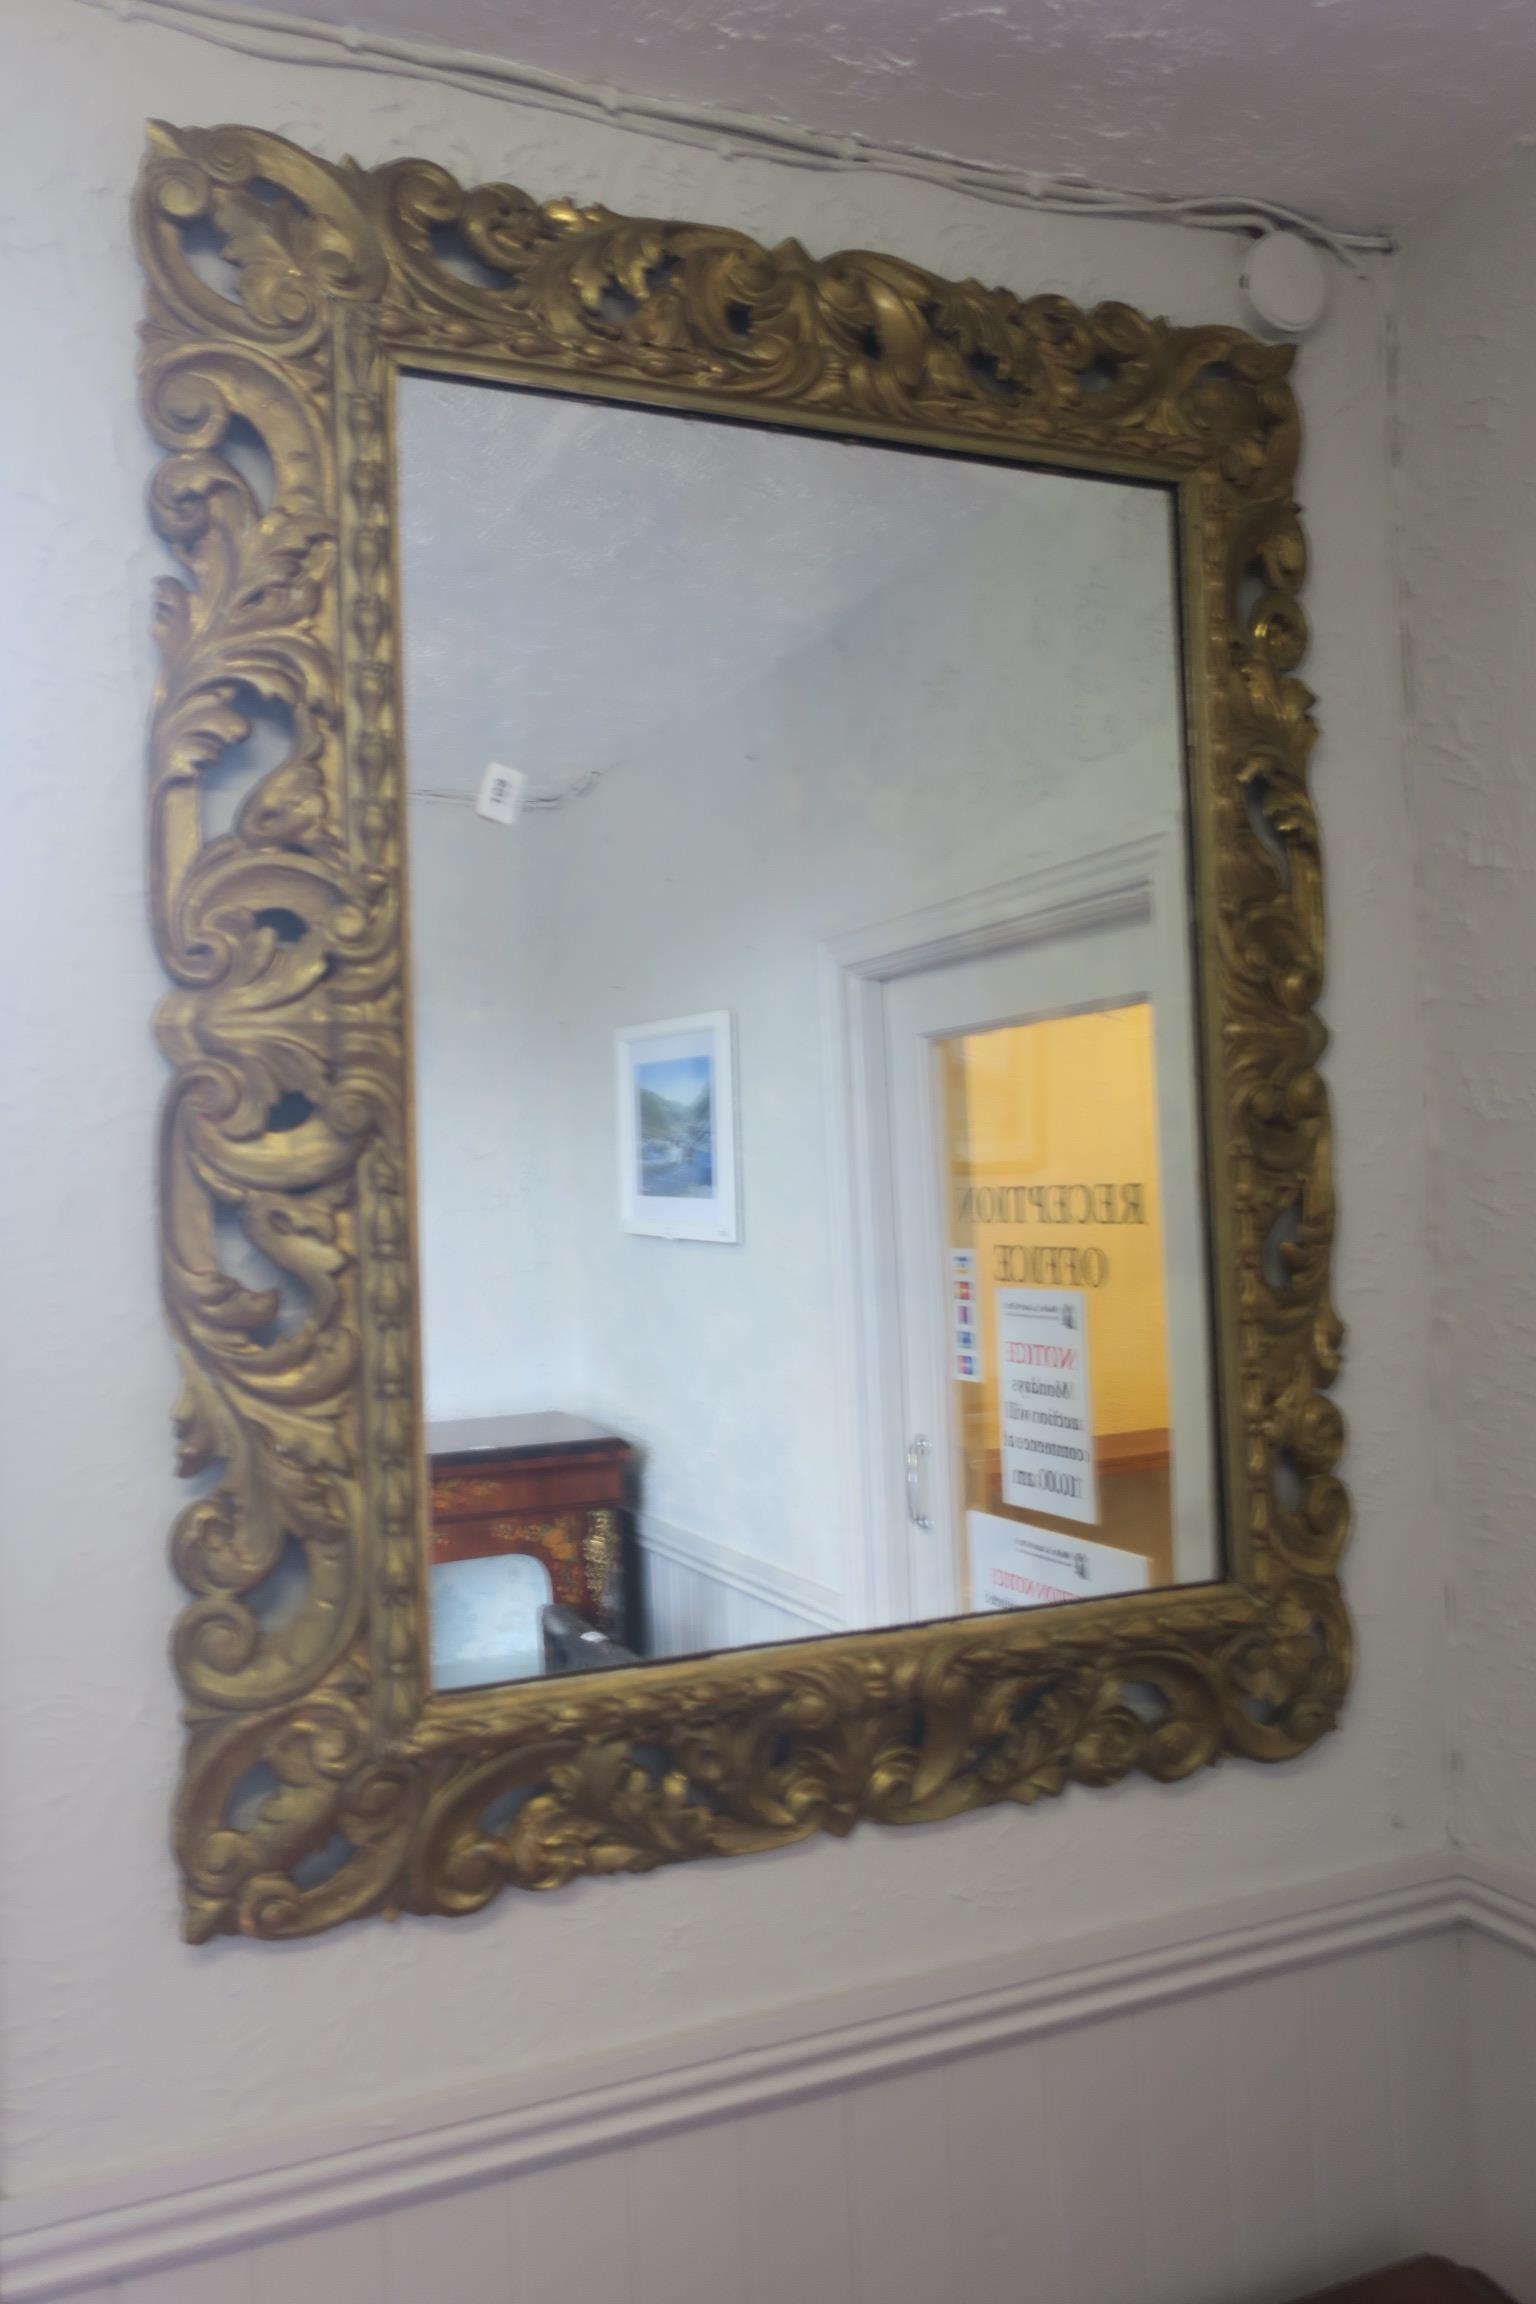 Lot 392 - A 19TH CENTURY CARVED GILTWOOD MIRROR the rectangular plate within a pierced foliate scroll frame